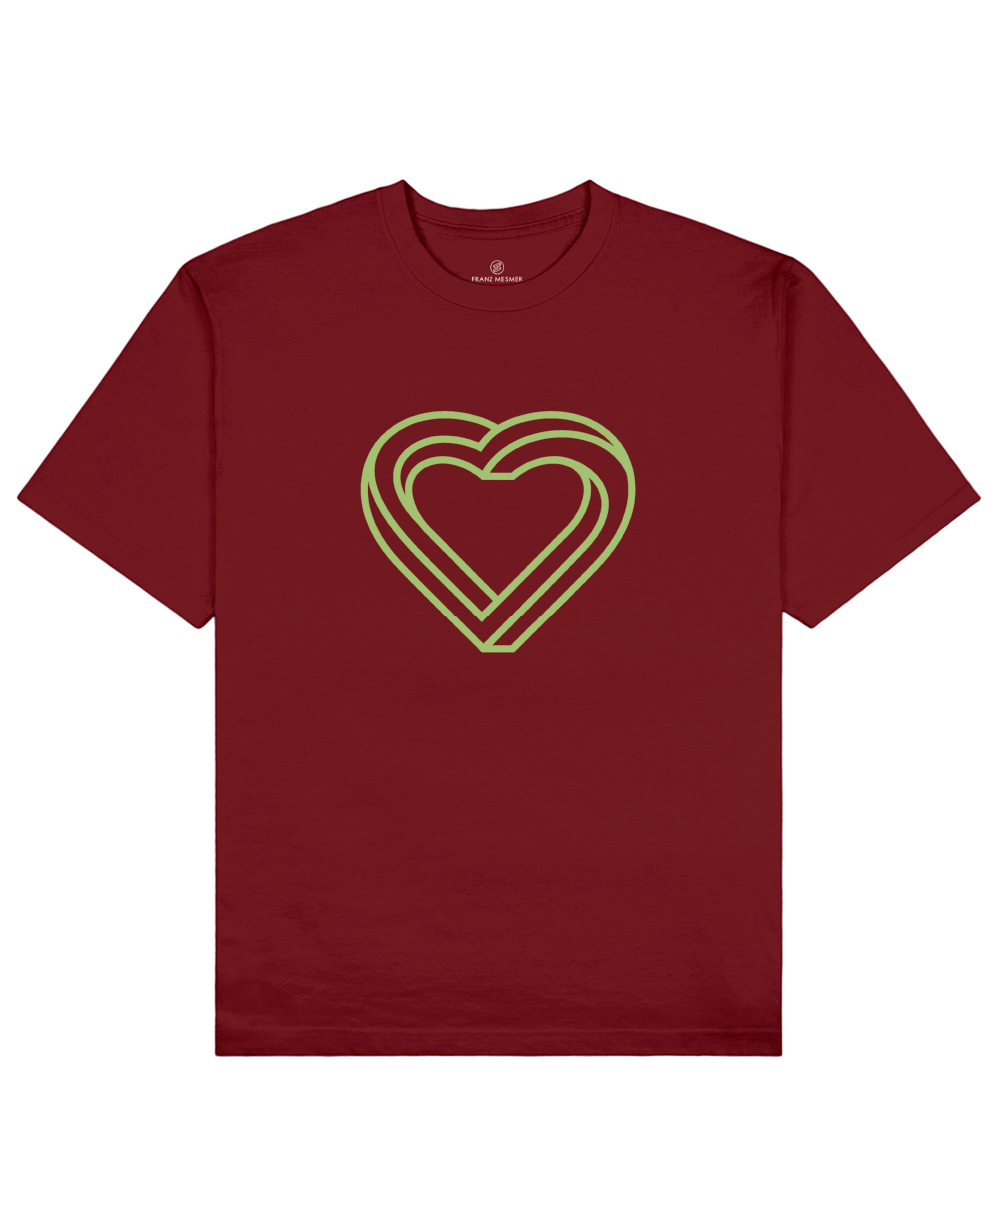 Impossible Heart Print T-Shirt in Red - T-Shirts - Franz Mesmer - BRANMA